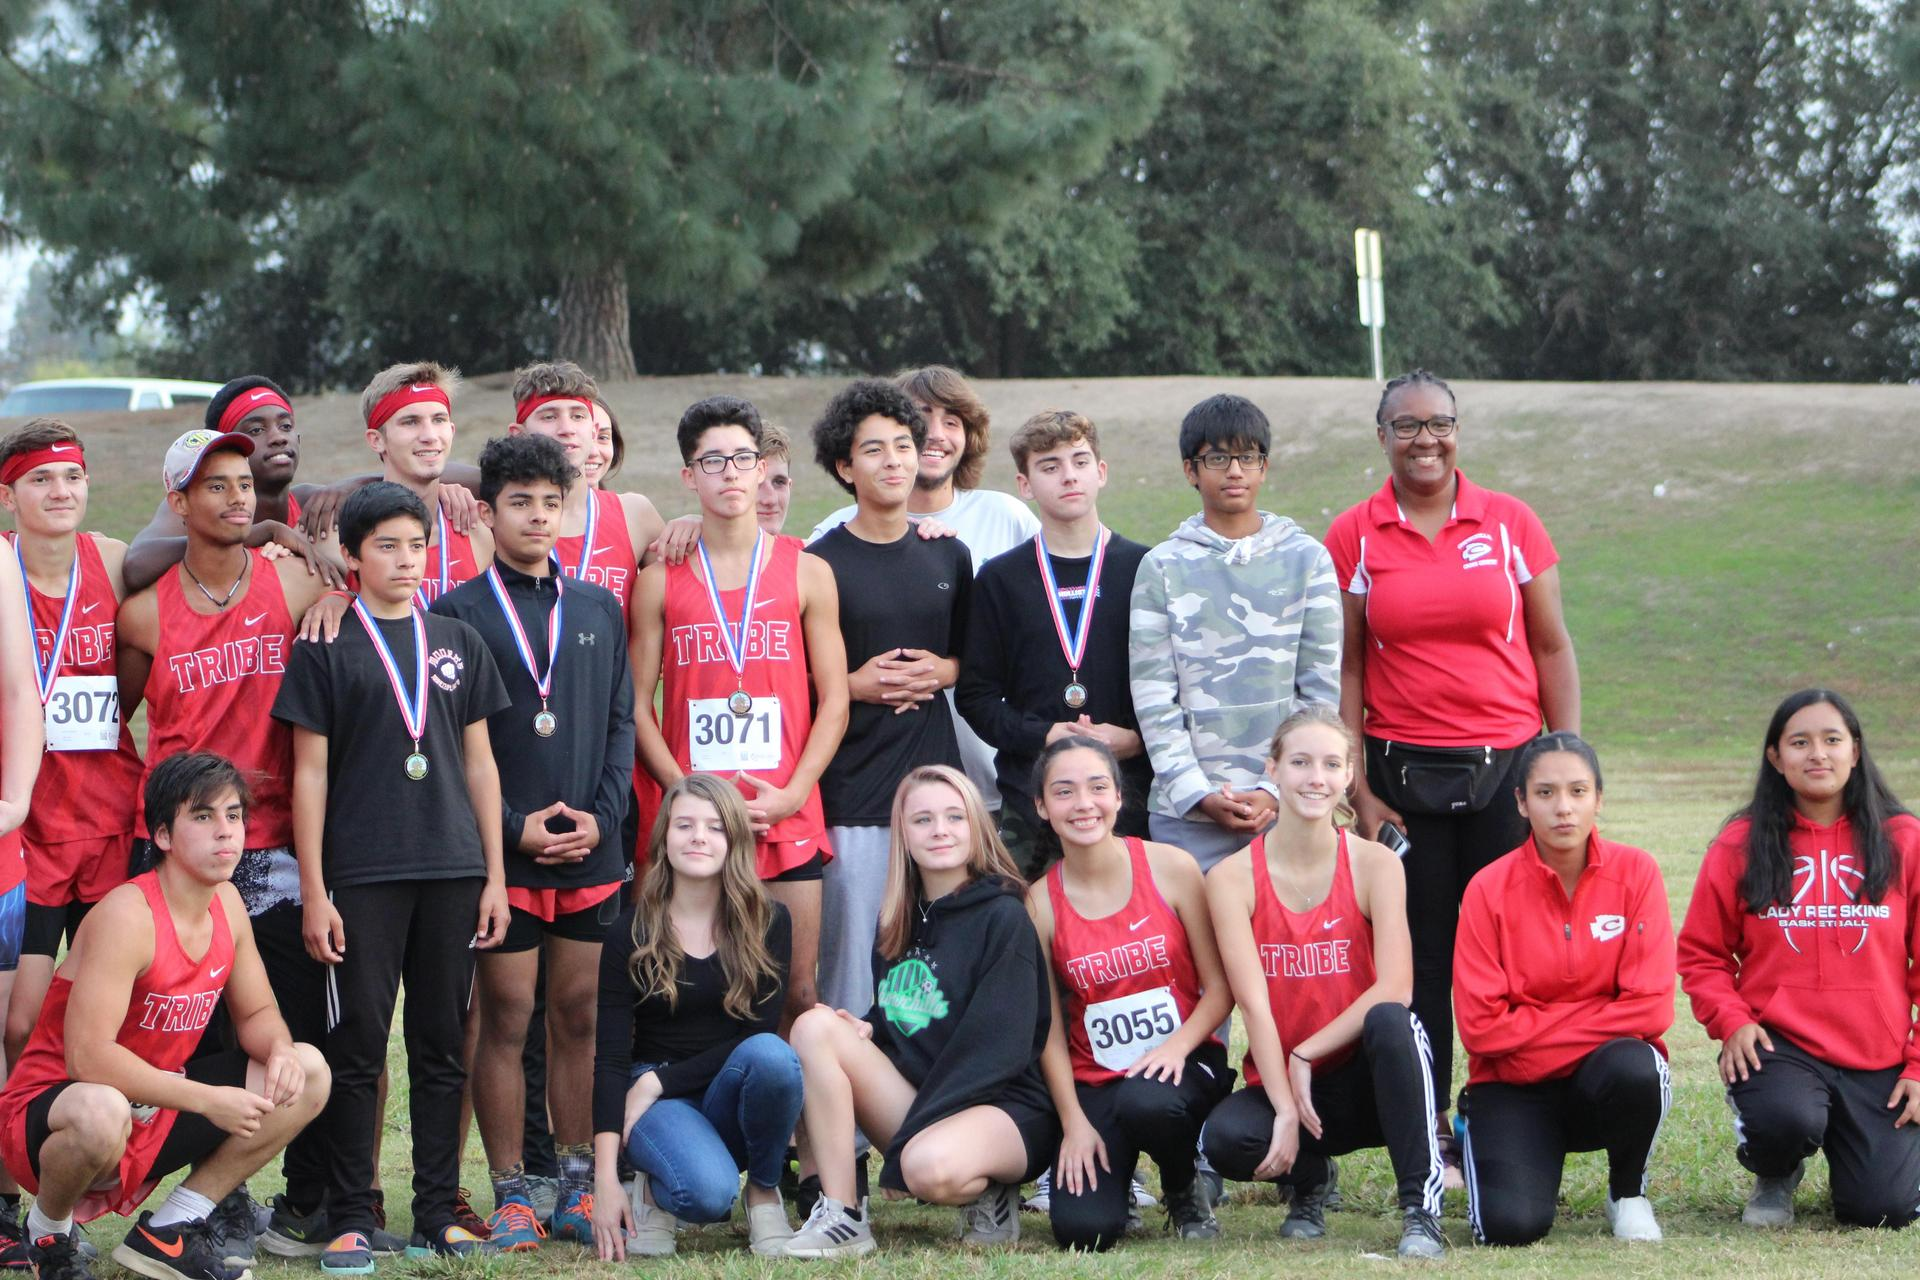 The whole Cross country team together